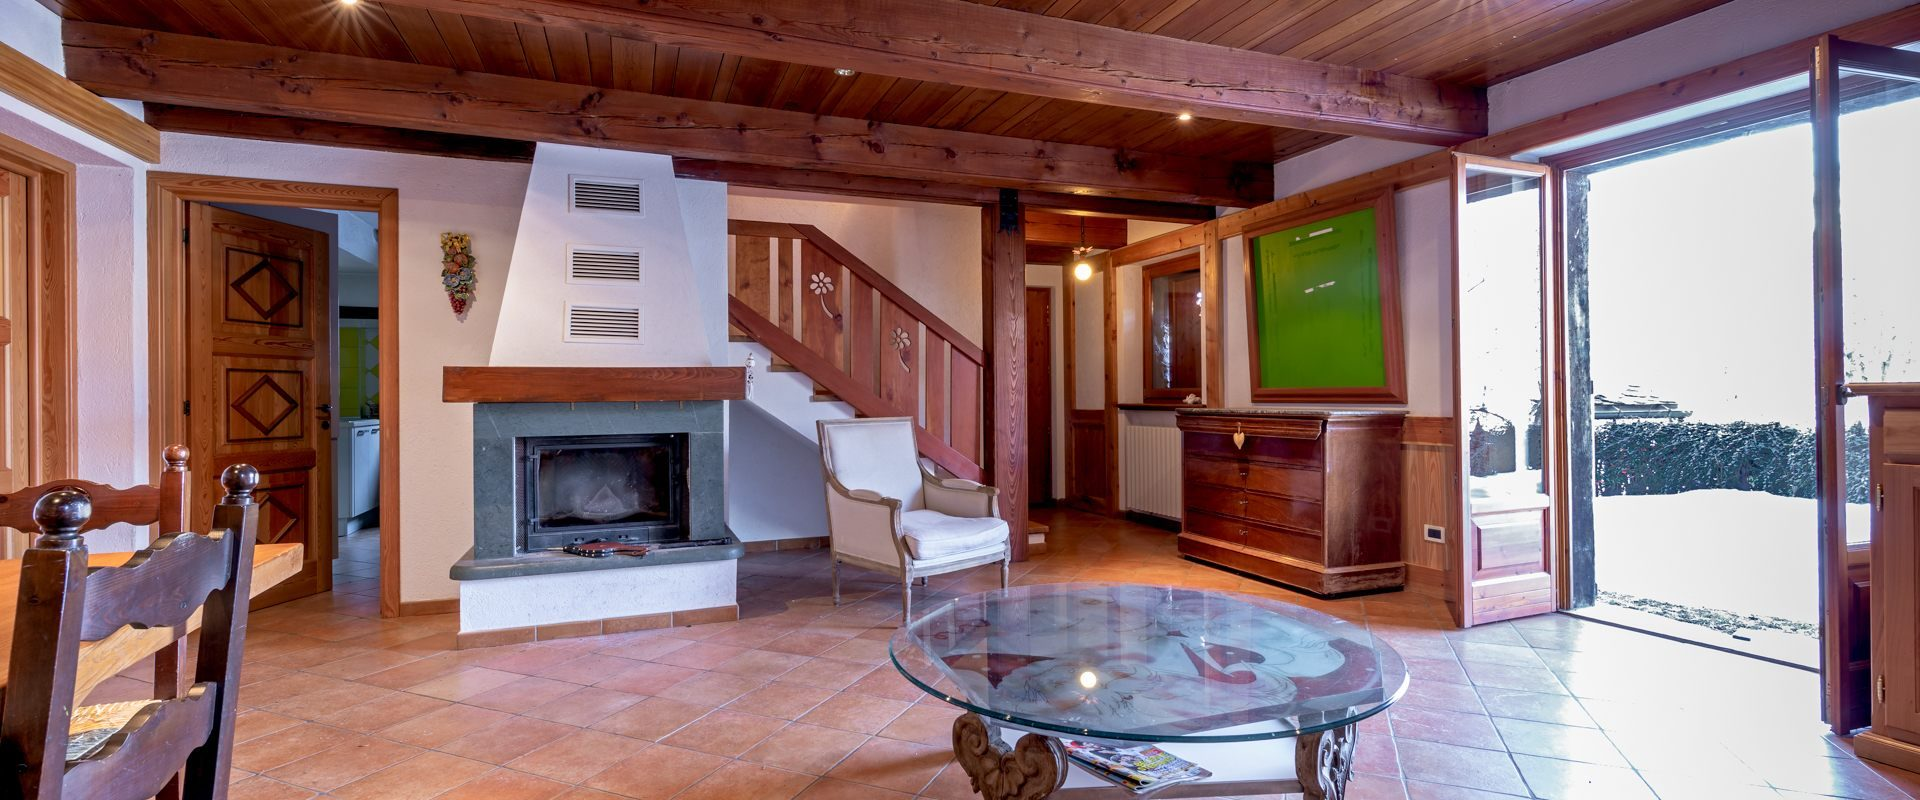 Chalet in S. Giovanni on the Olimpic slope